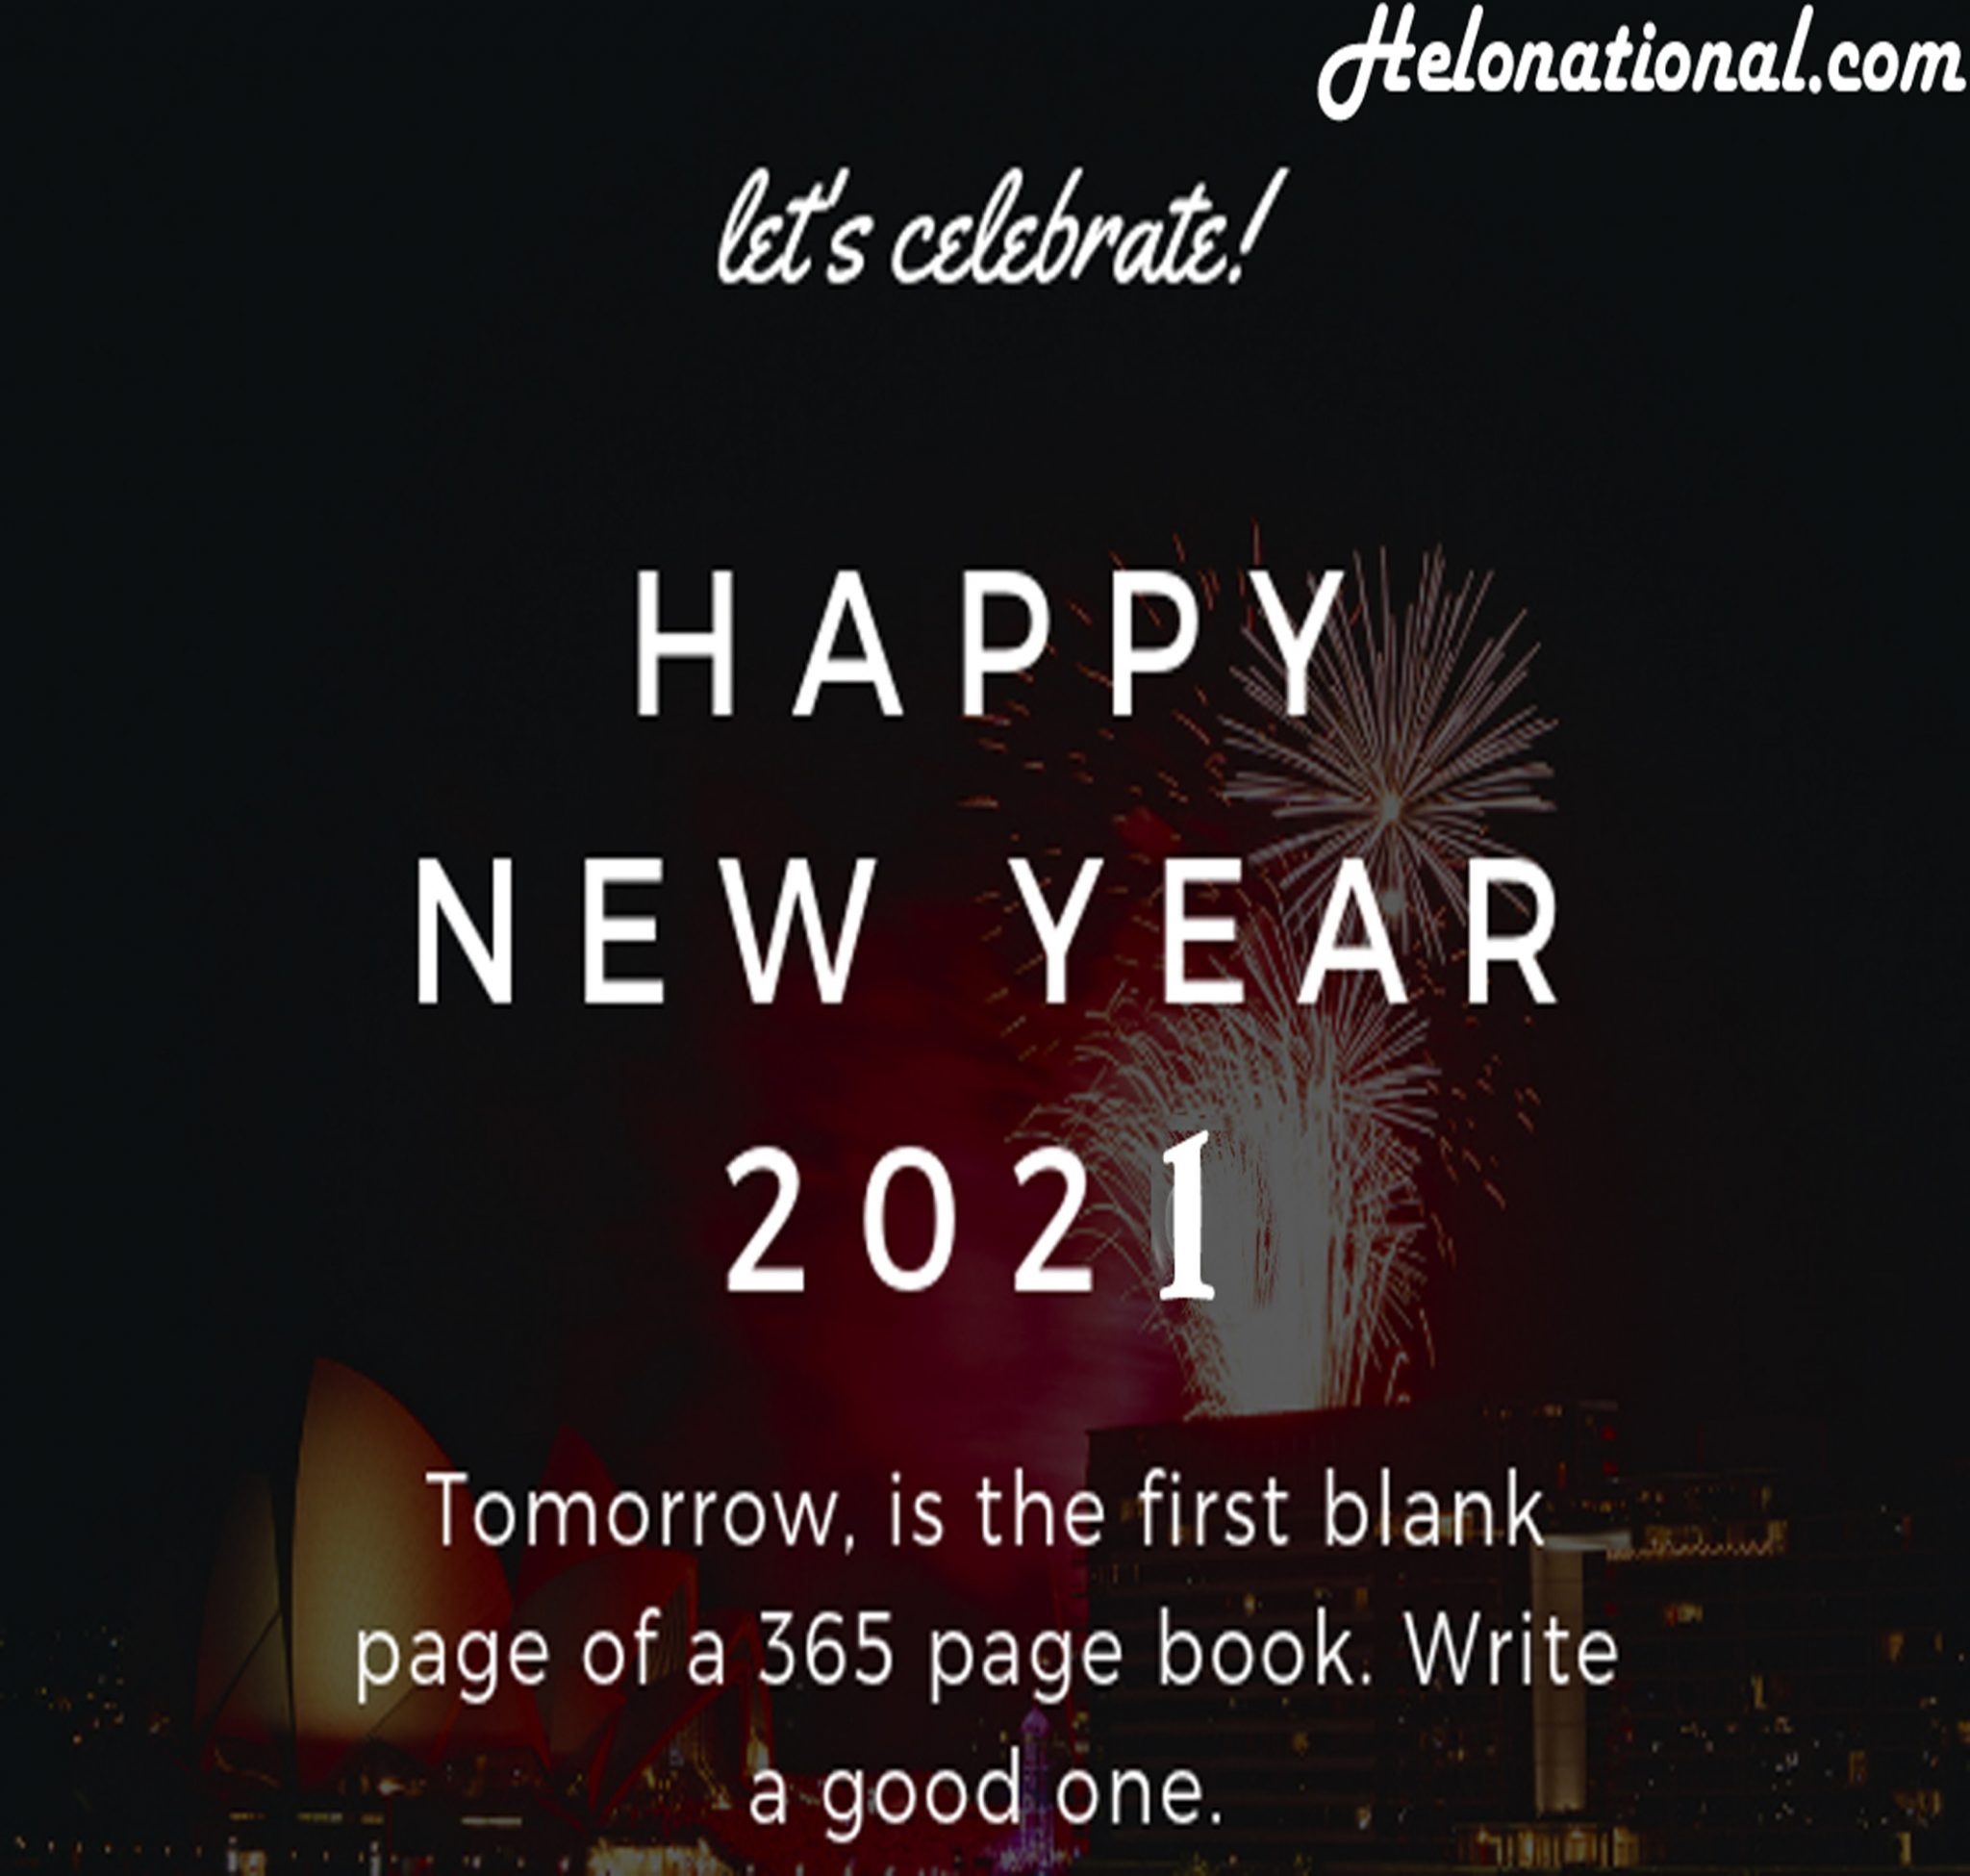 hny 2021 romantic beautiful quotes hd images